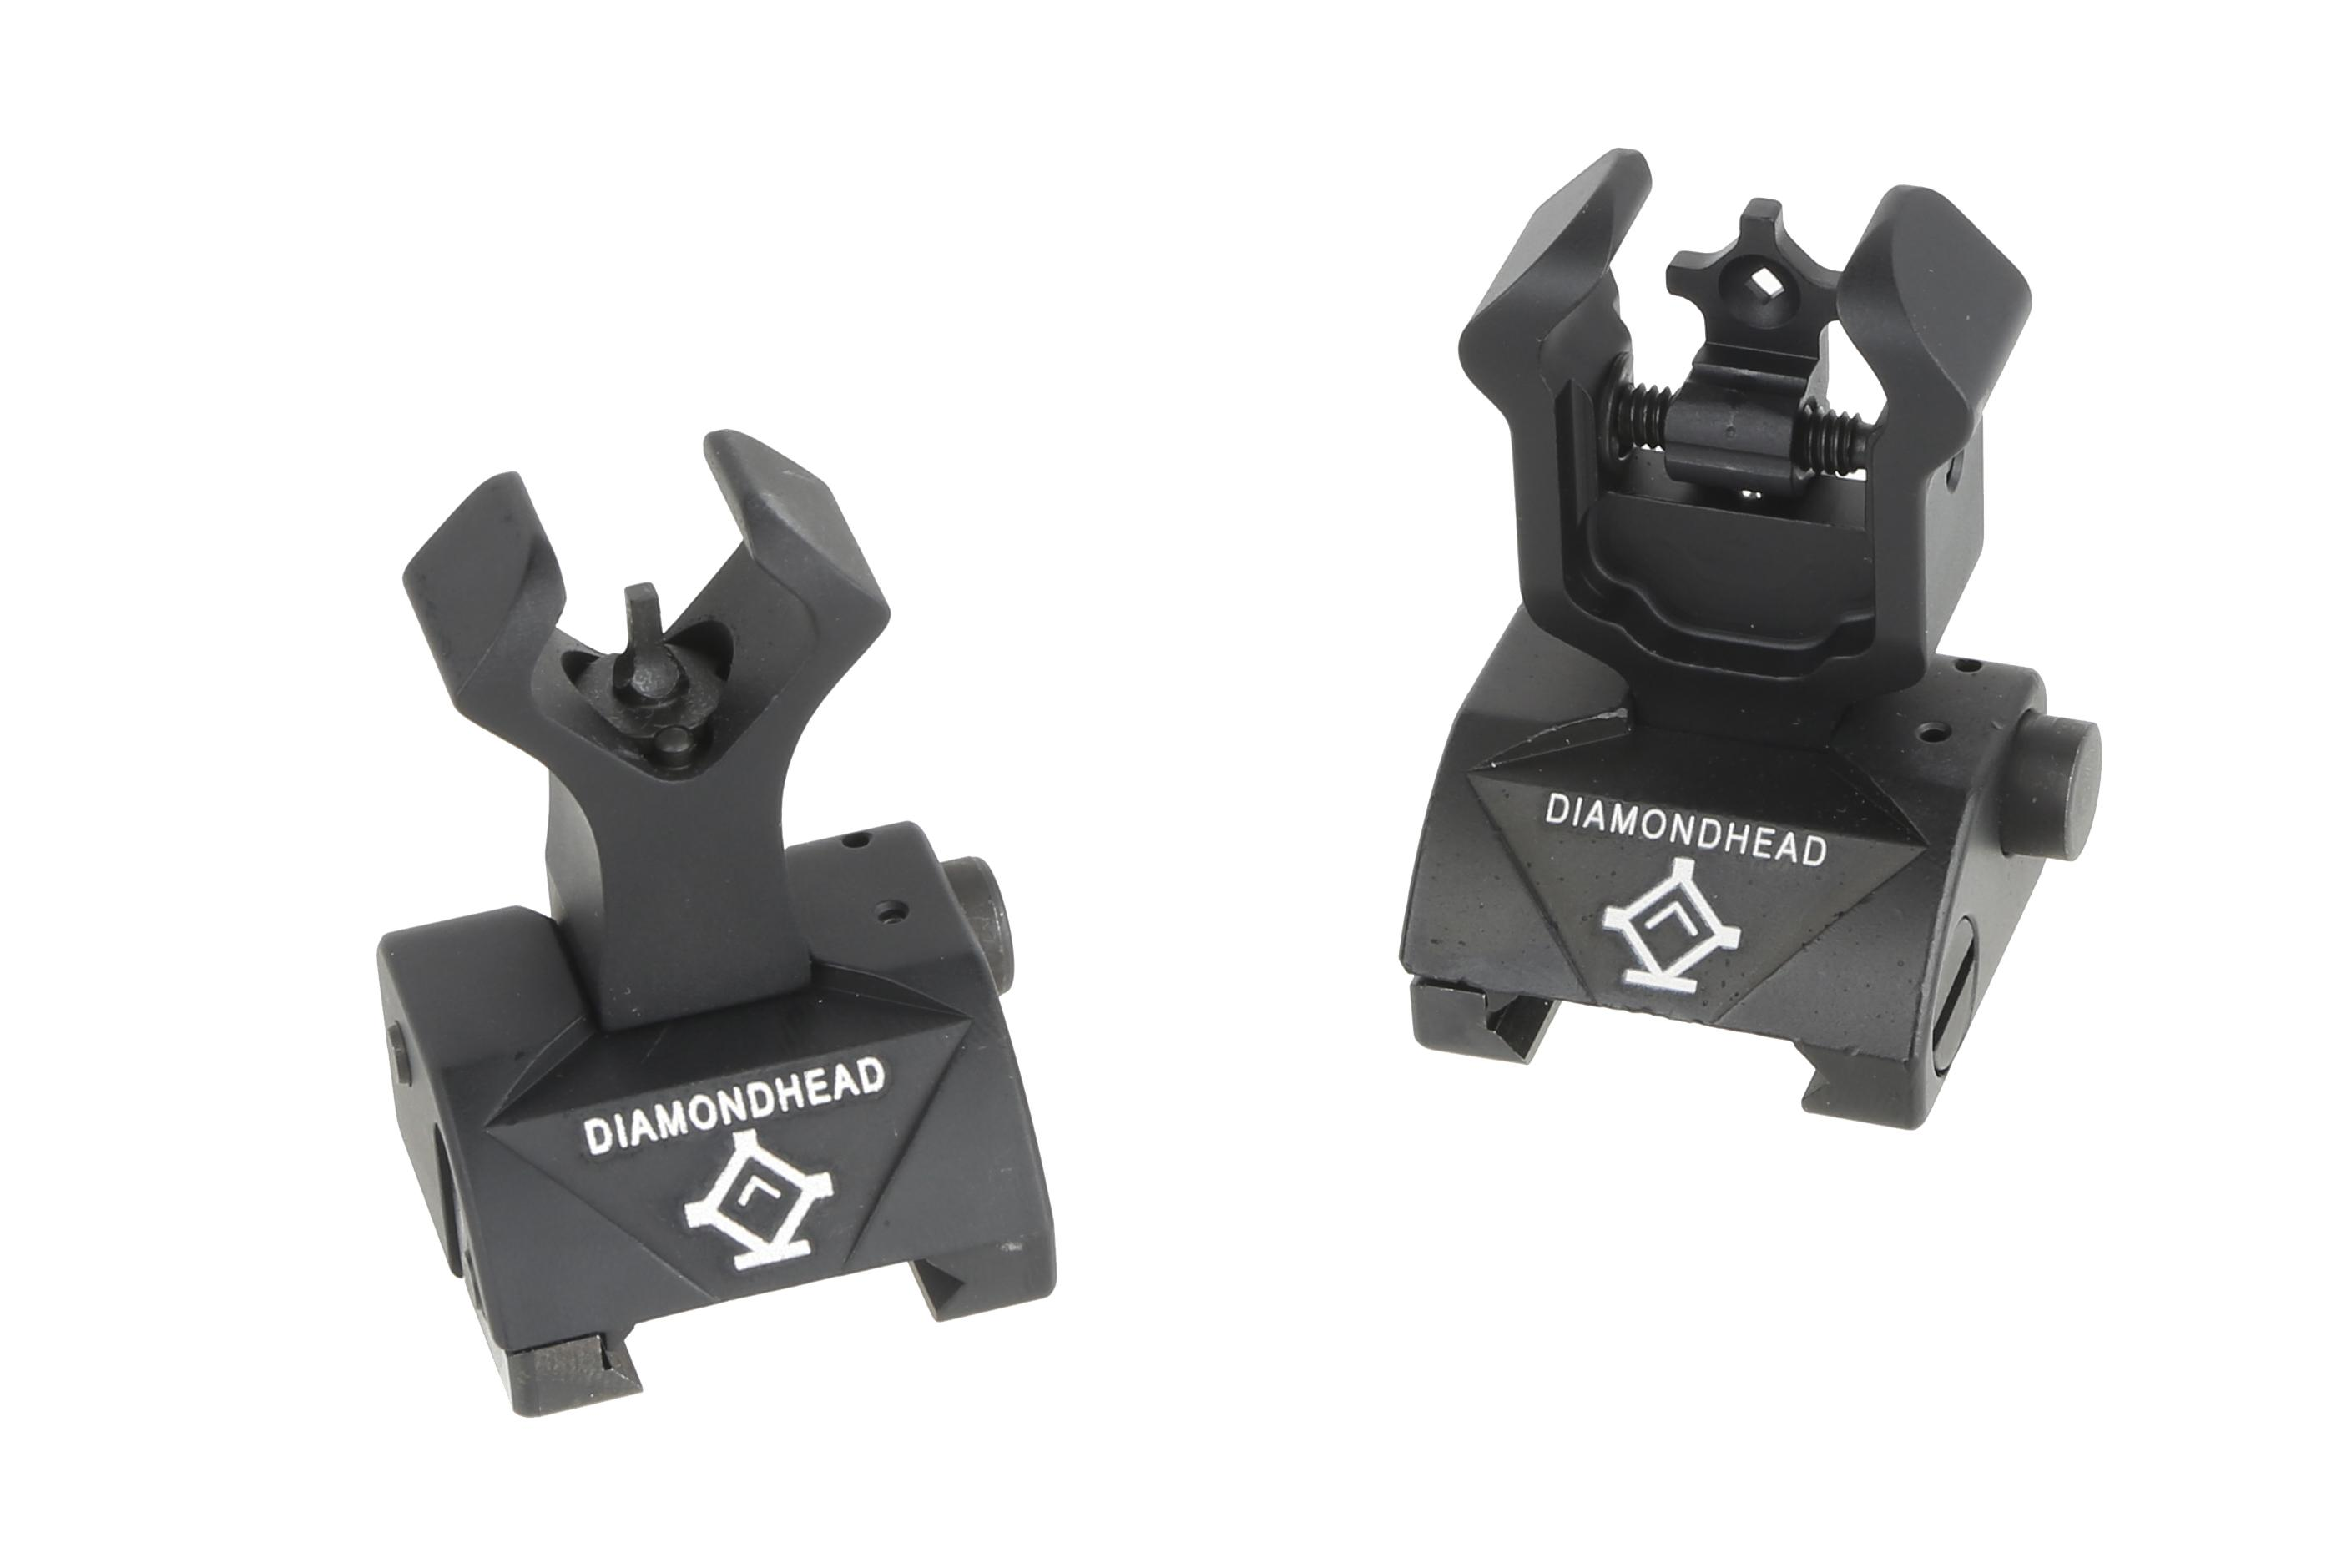 The Diamondhead USA Diamond Integrated Sighting System back up iron sights for AR15 rifles feature a flip up design